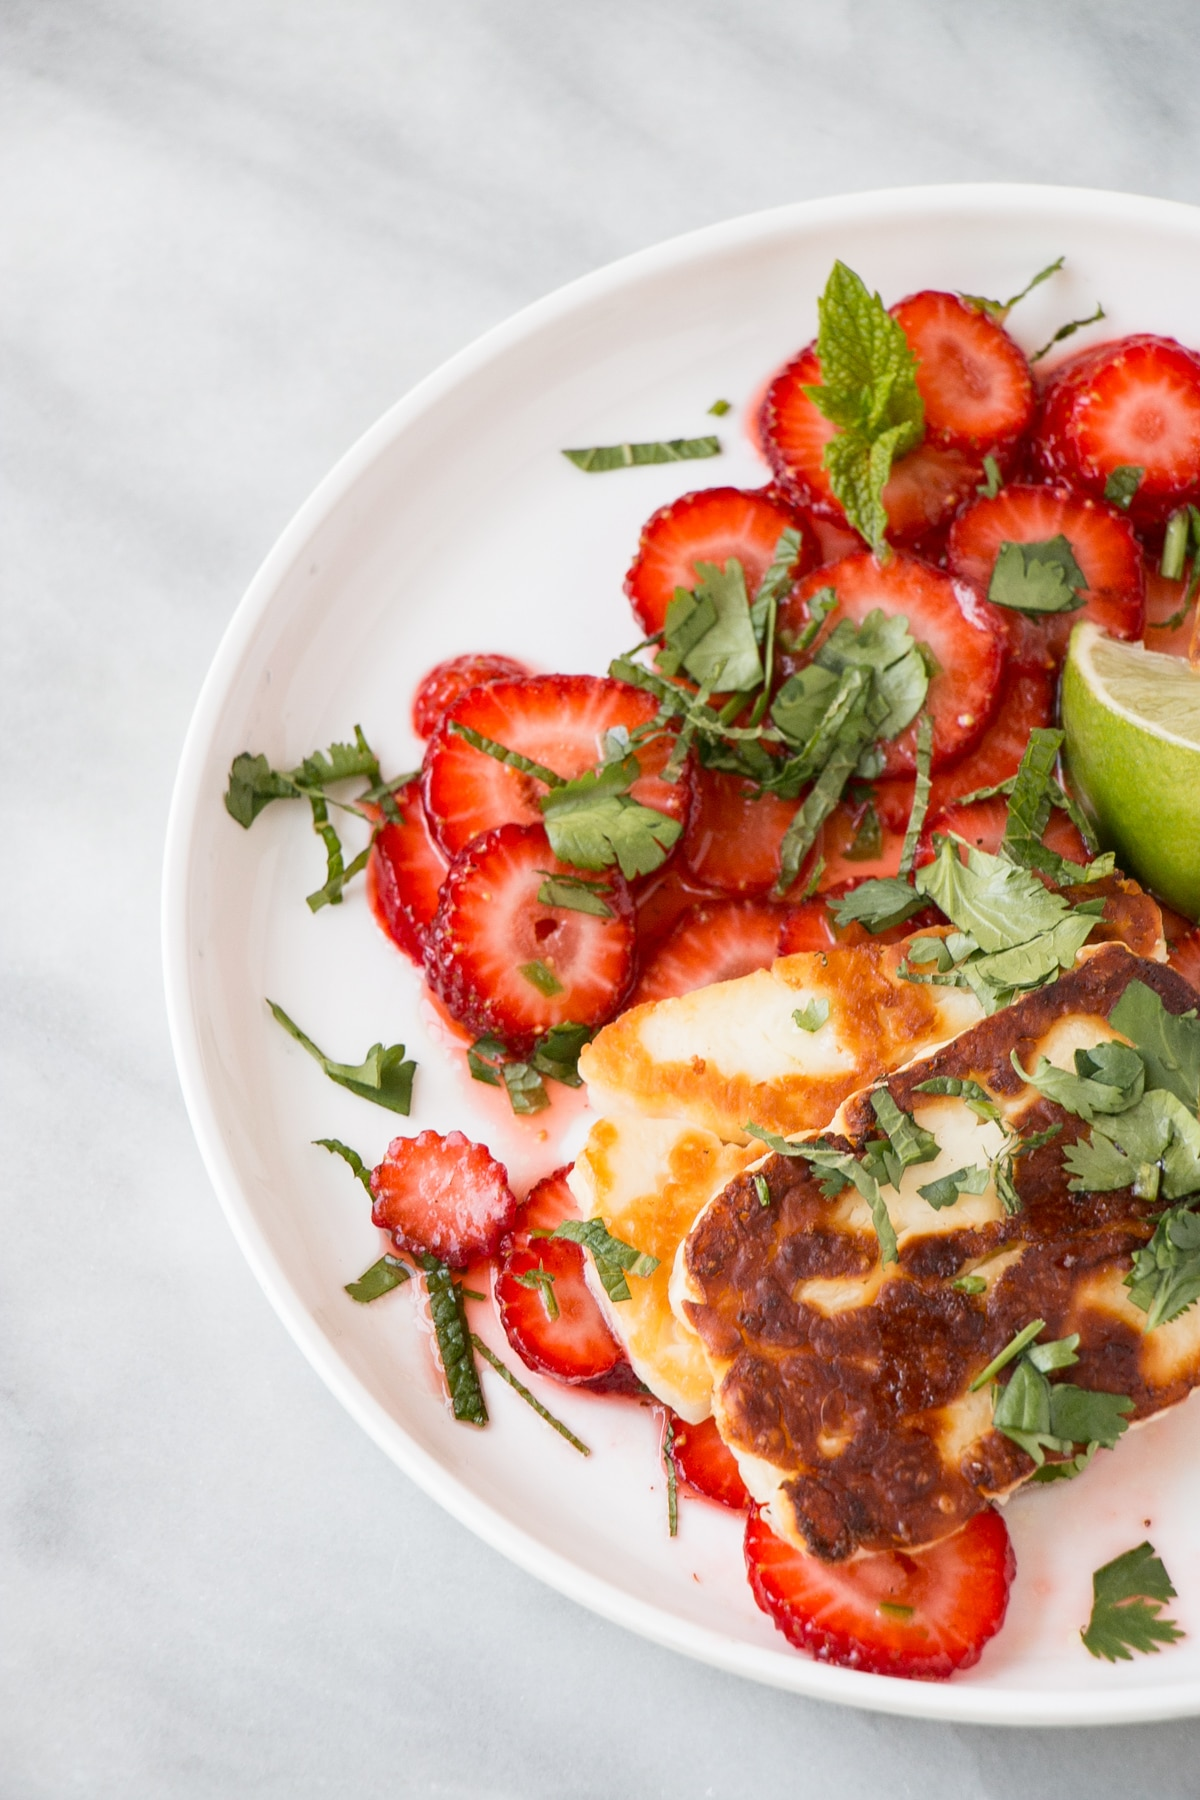 Halloumi and Strawberry Salad on a white plate.